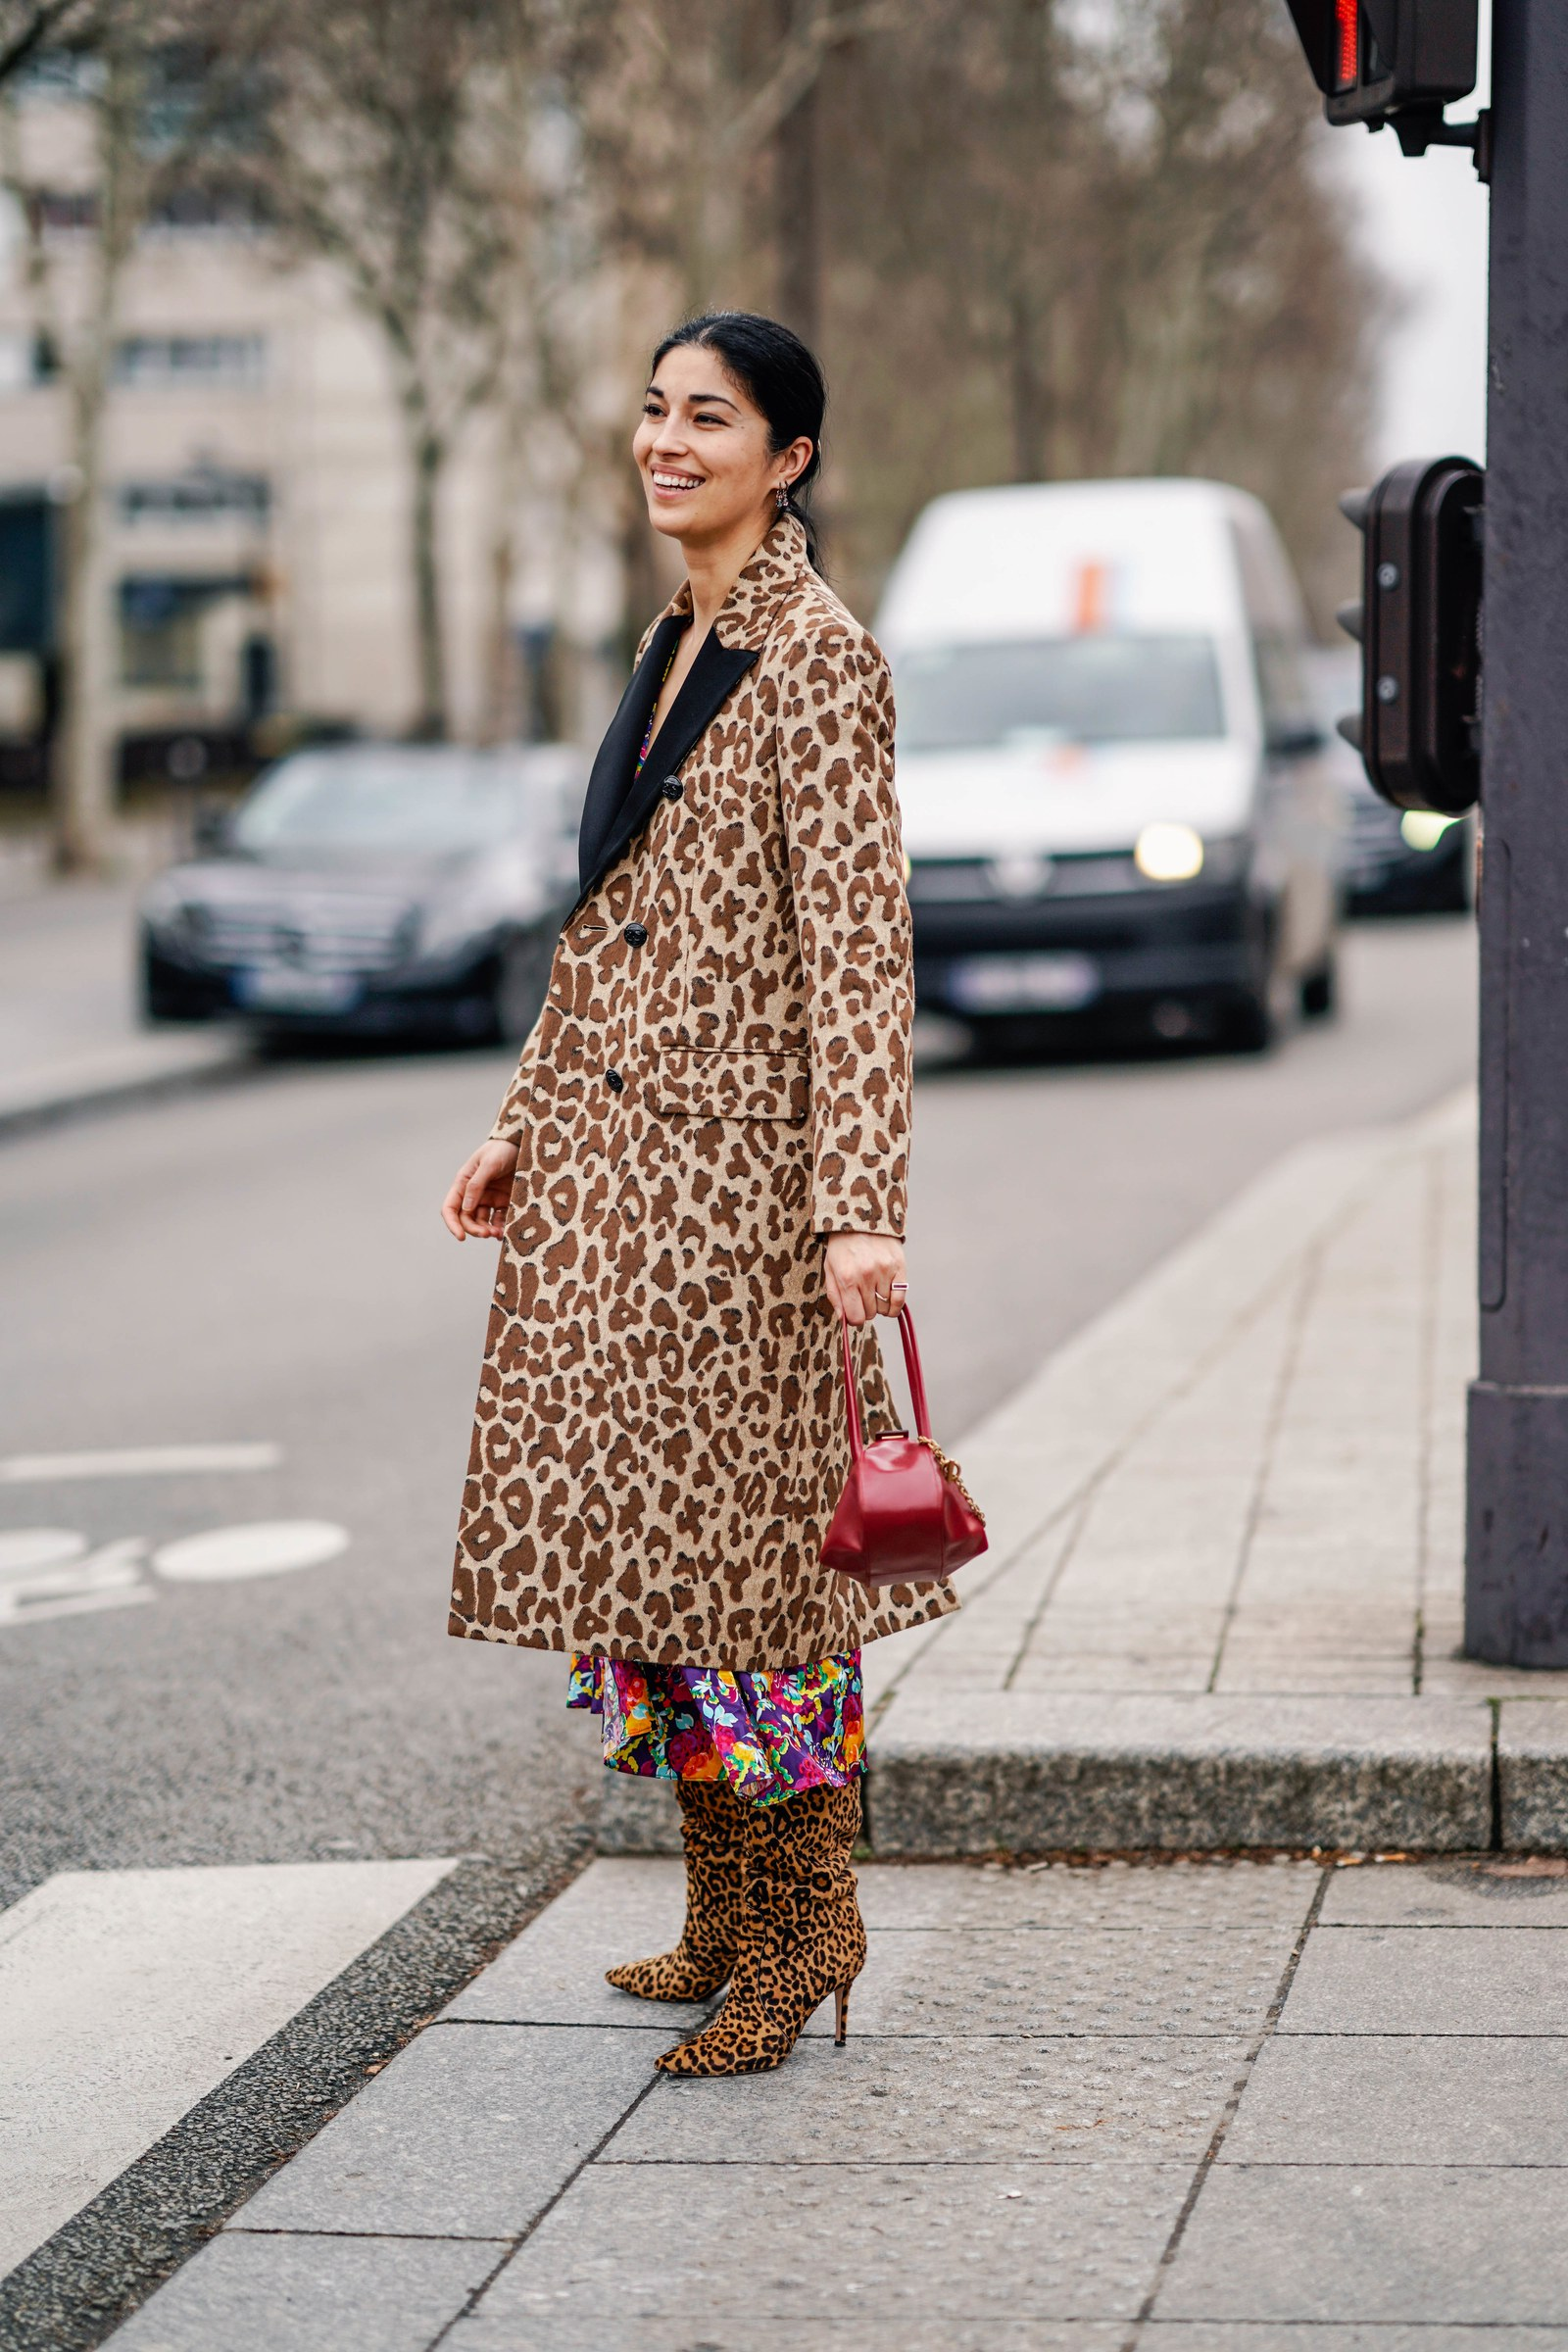 Caroline Issa wears a Dolce Gabbana brown leopard print coat with black lapels a colorful floral print flowing dress a...